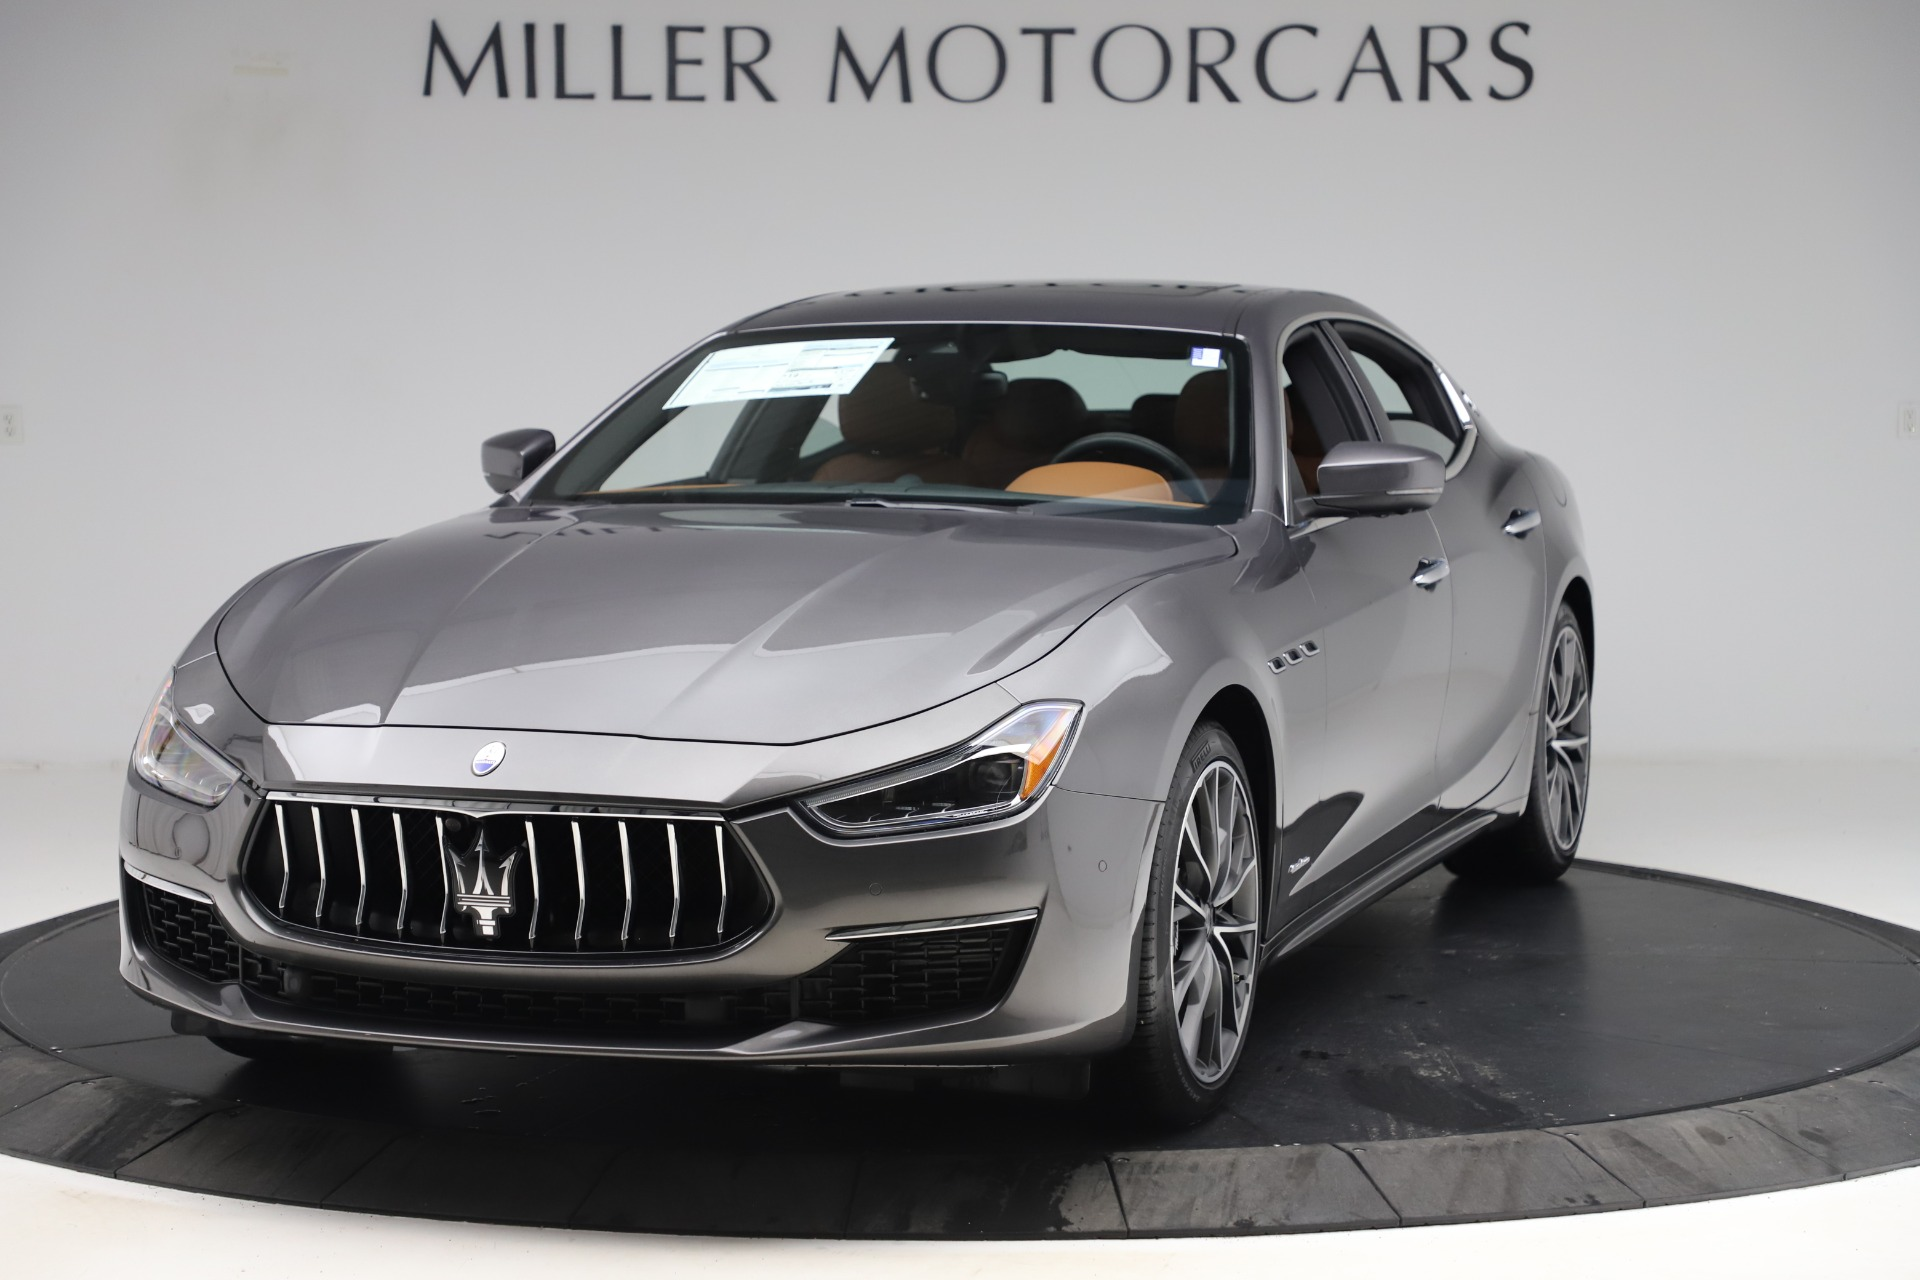 New 2019 Maserati Ghibli S Q4 GranLusso for sale $98,095 at Bentley Greenwich in Greenwich CT 06830 1